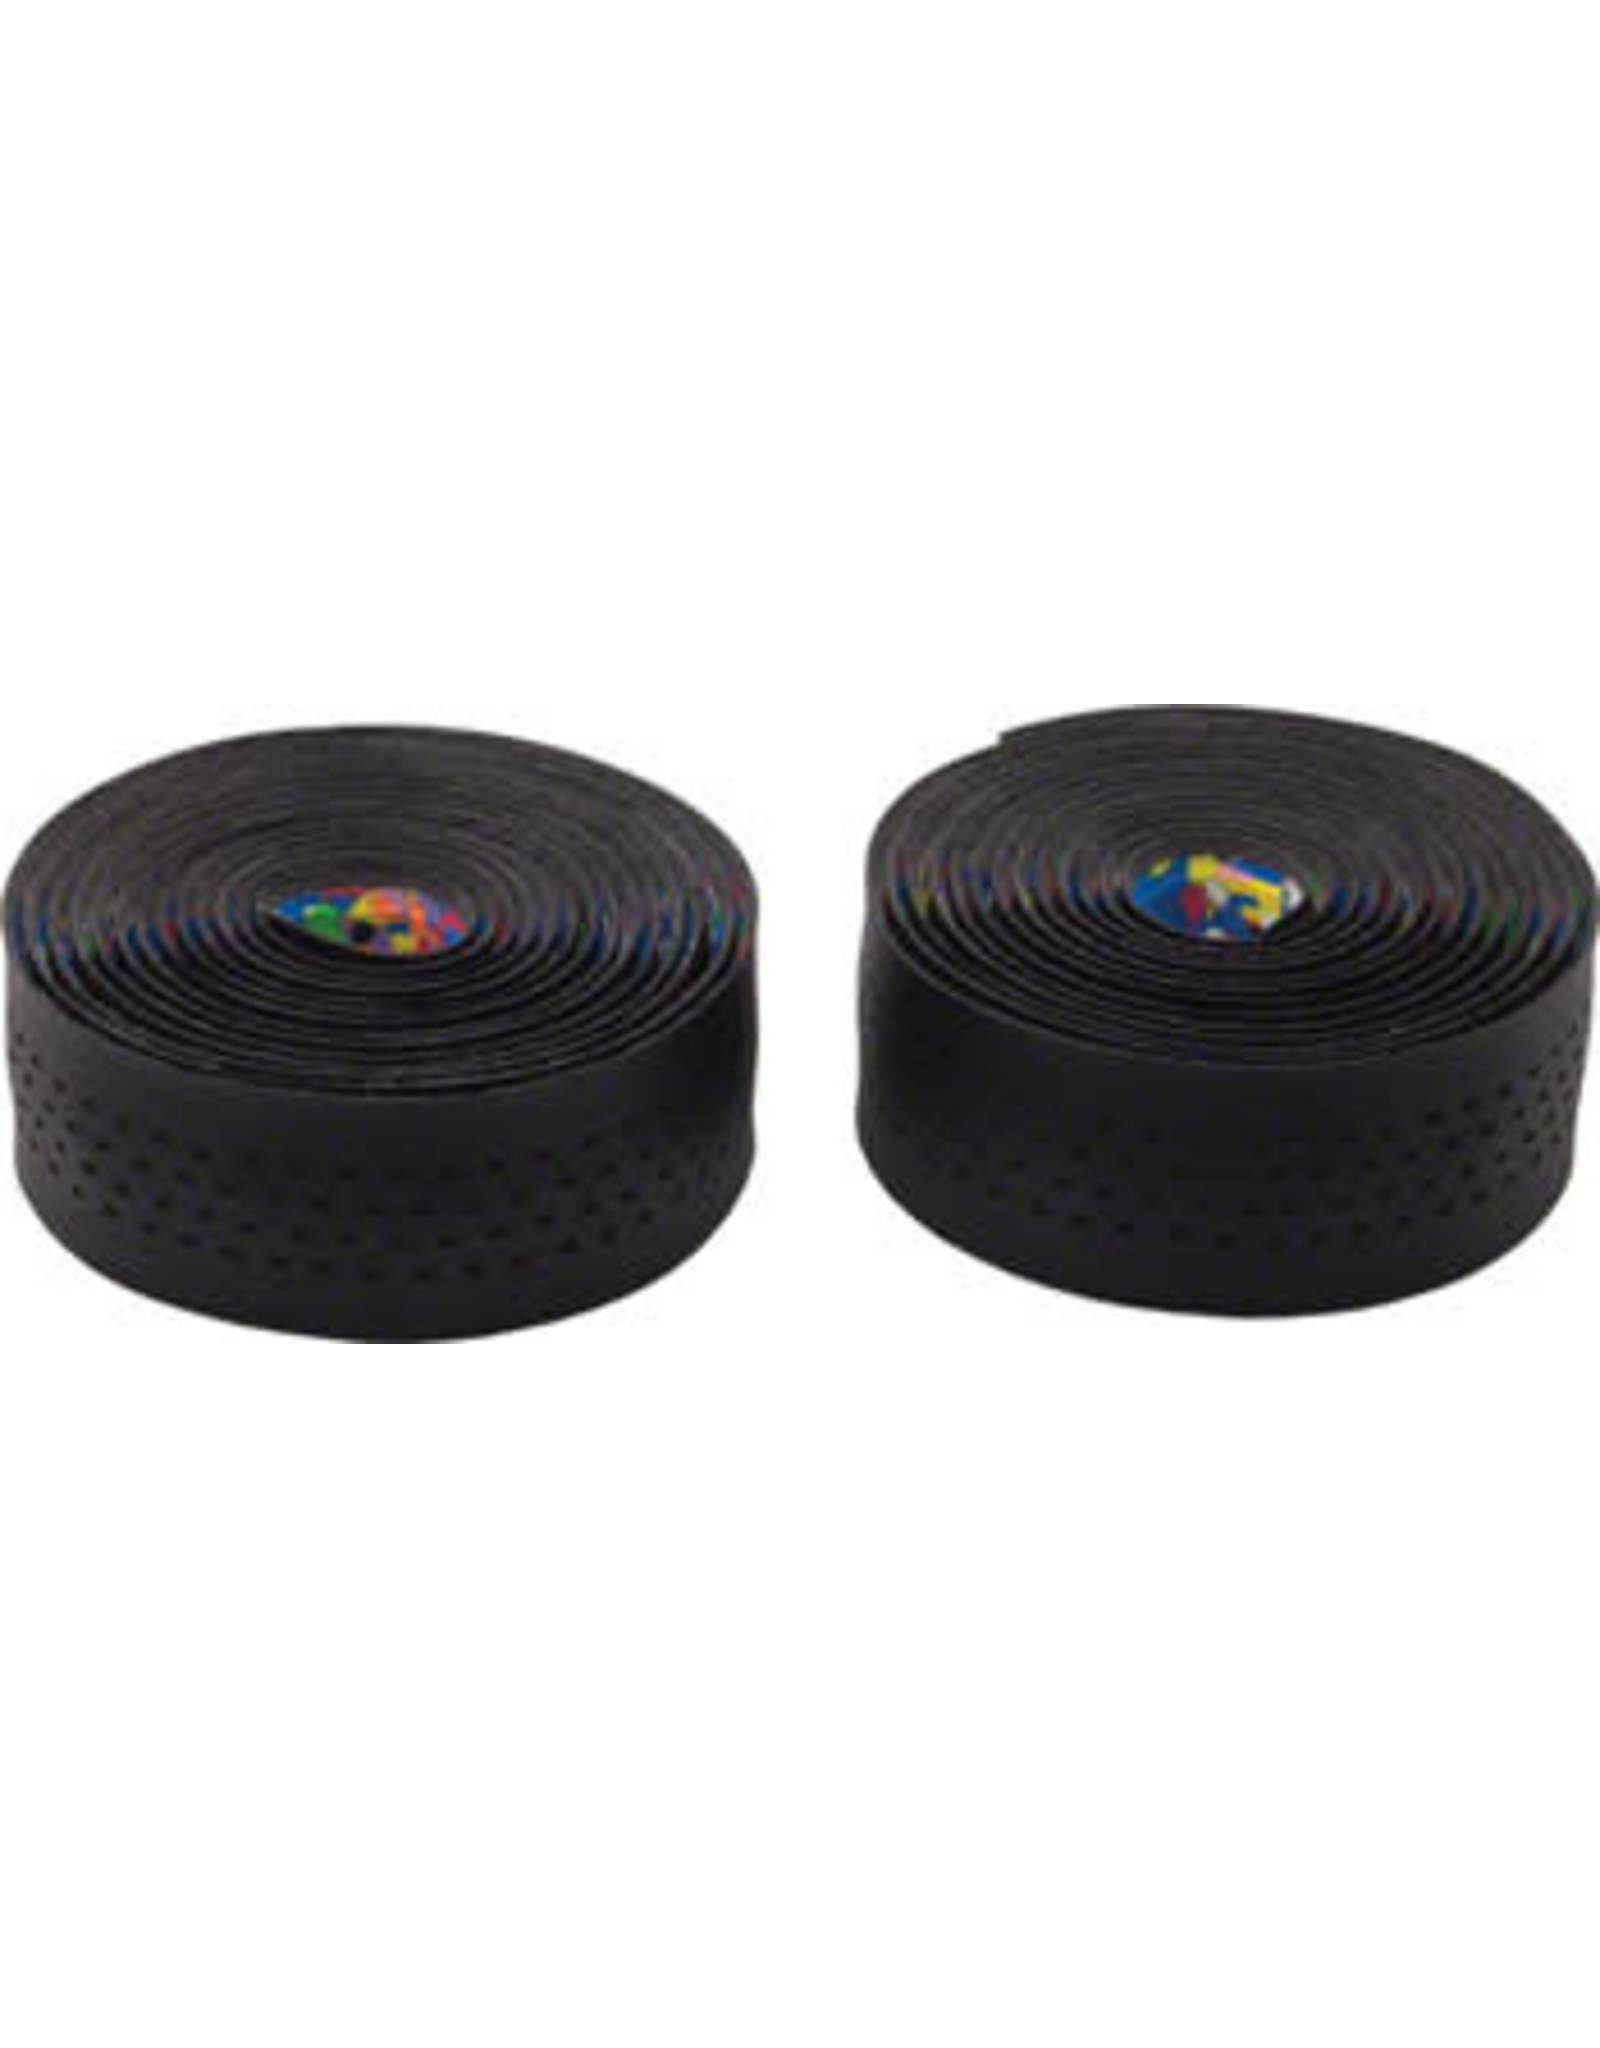 New Cinelli Caleido Ribbon Handlebar Tape Black